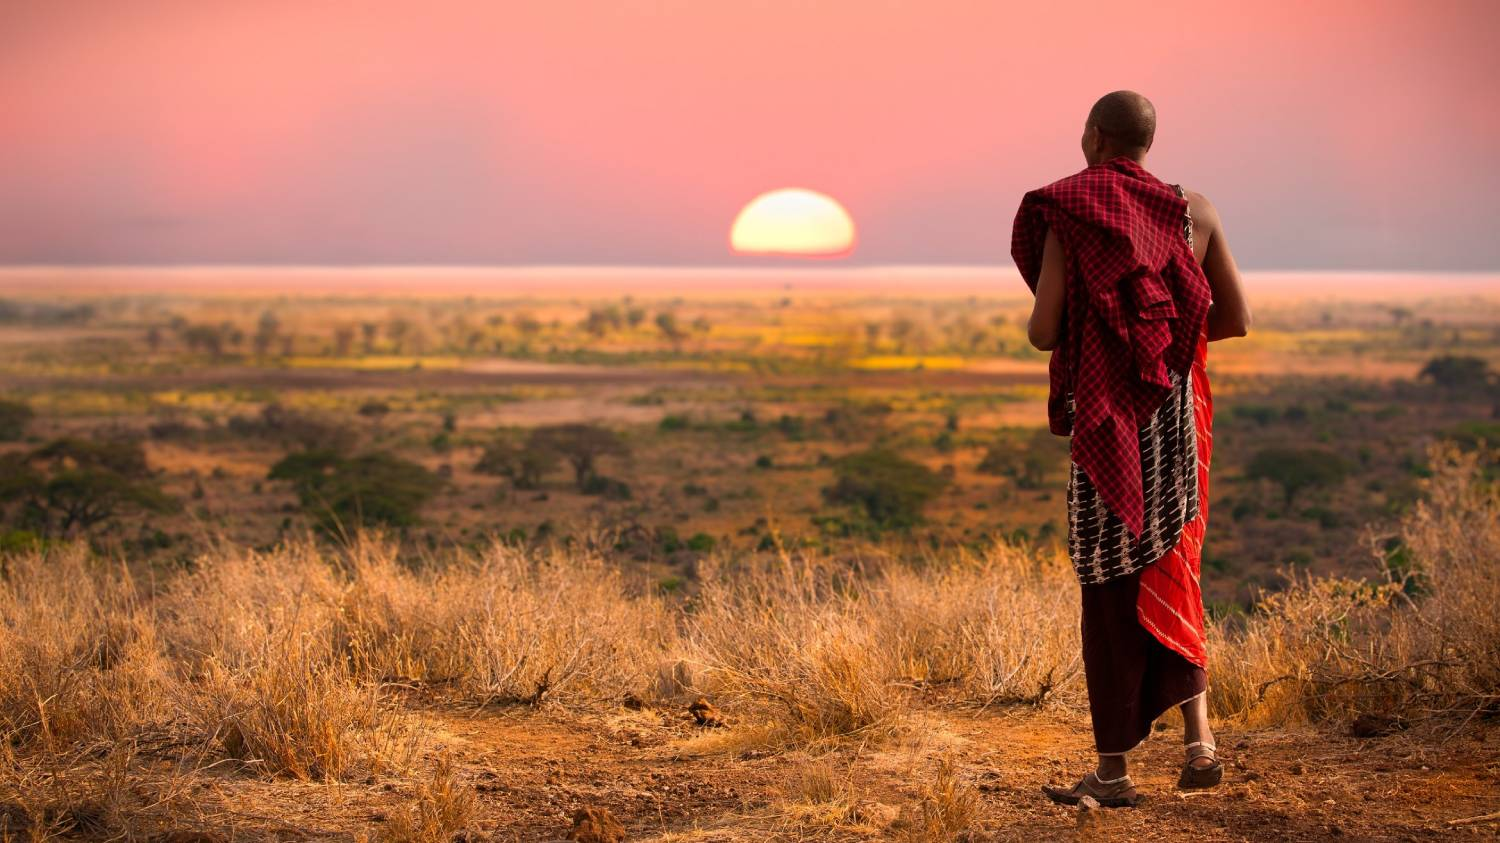 Tanzania - The Best Countries To Visit In Africa